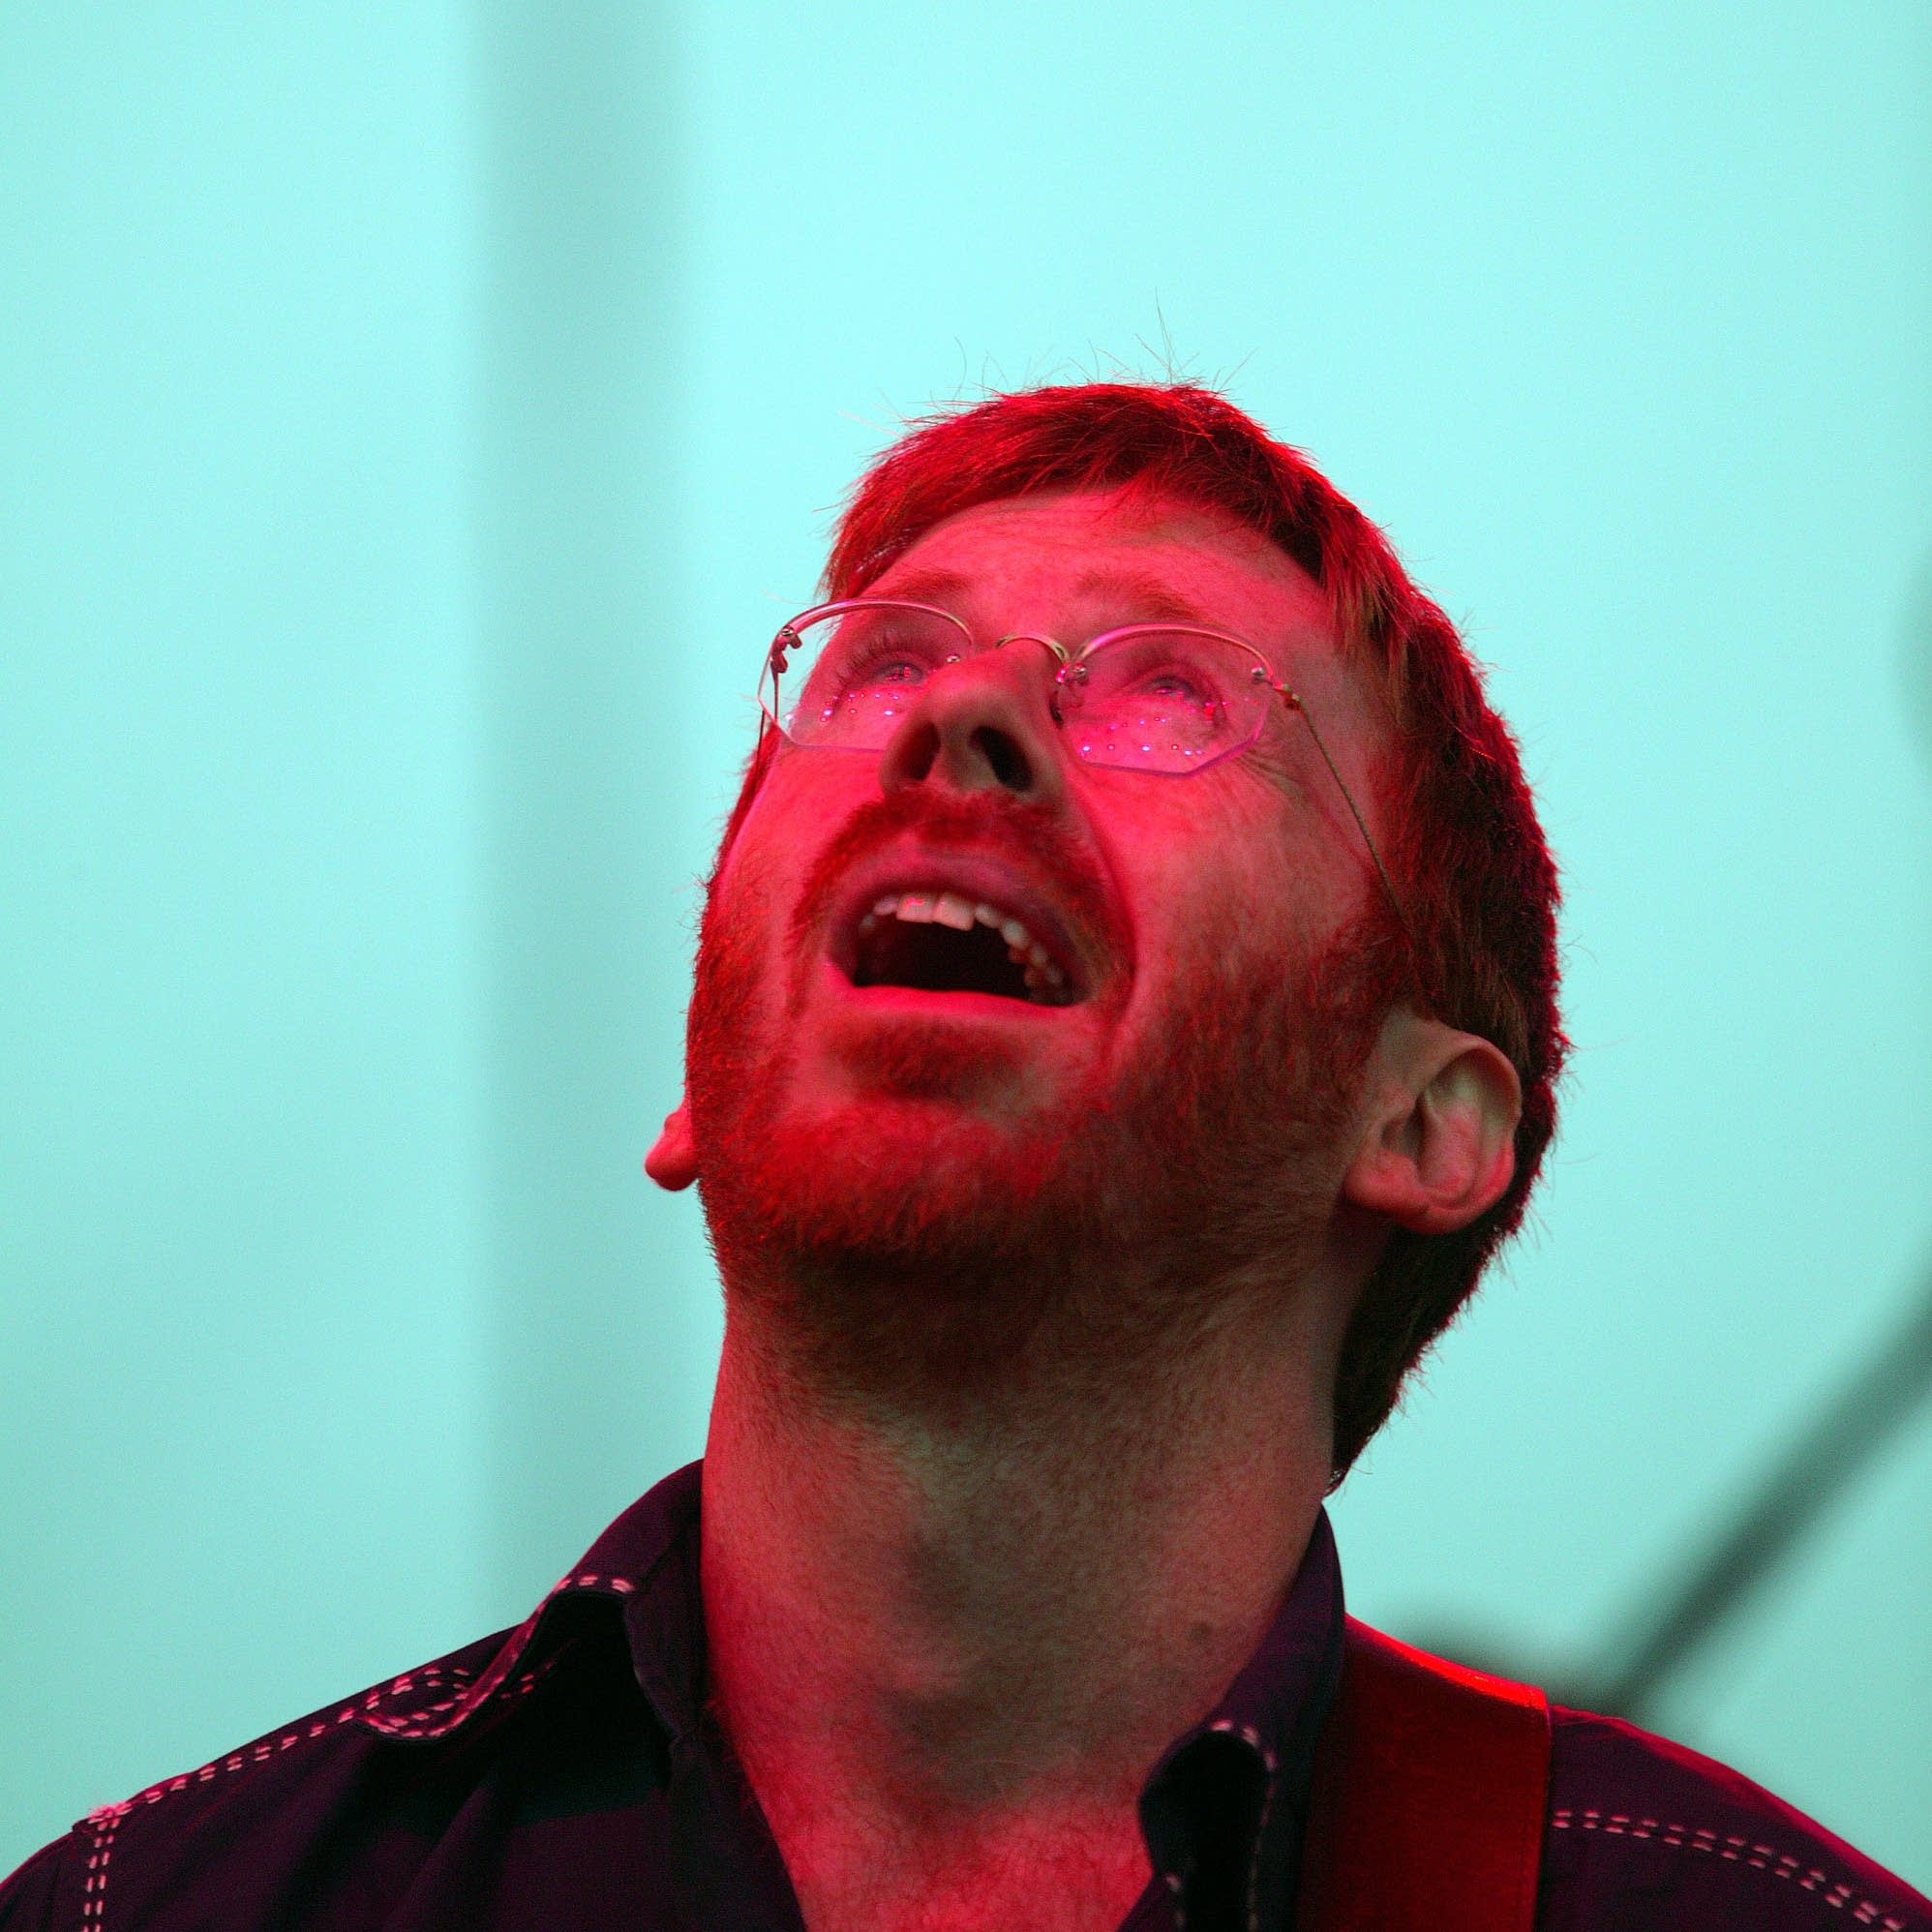 Trey Anastasio performs with Phish in 2004.